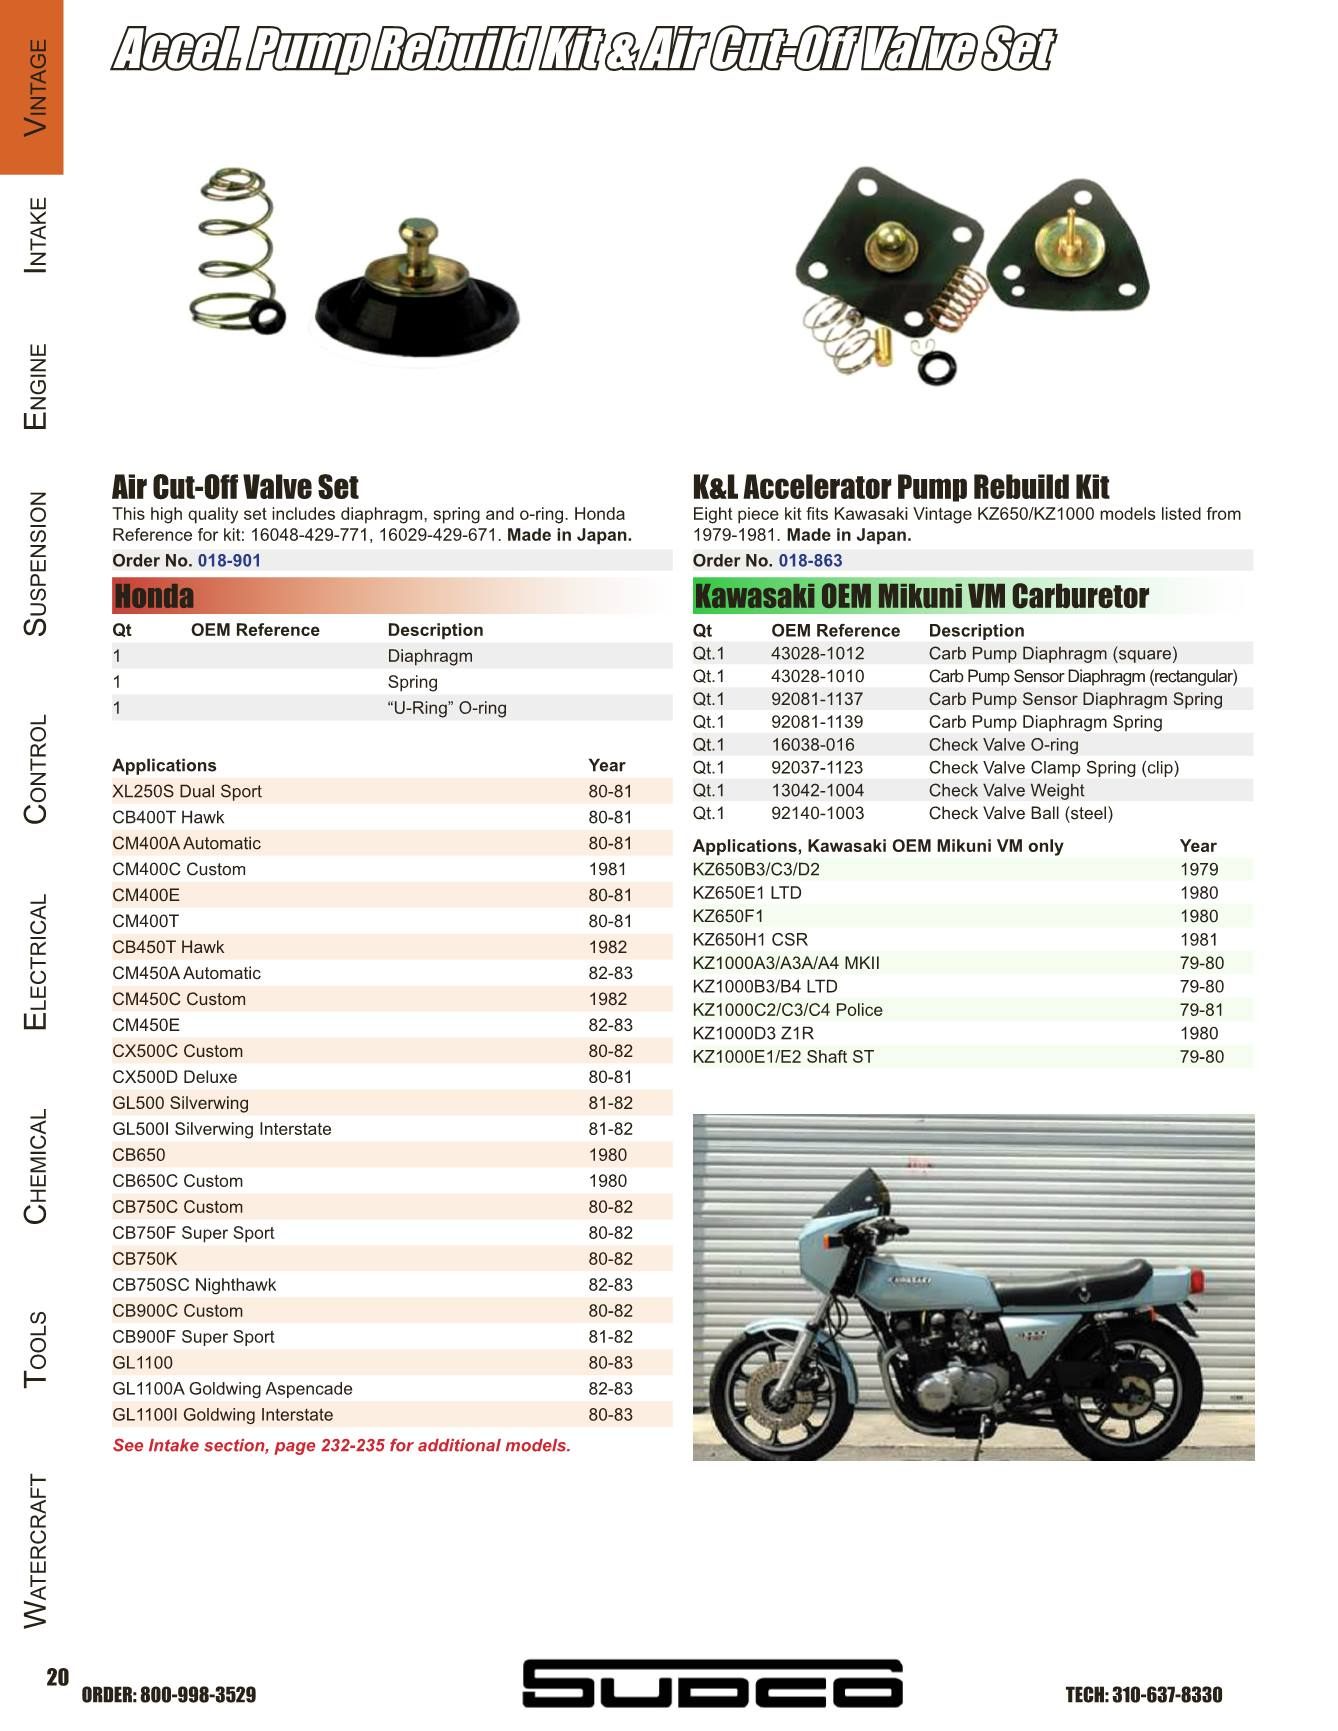 Index Of Files Assets Mobile Pages Wiring Diagram 1982 Honda Gl500 Interstate